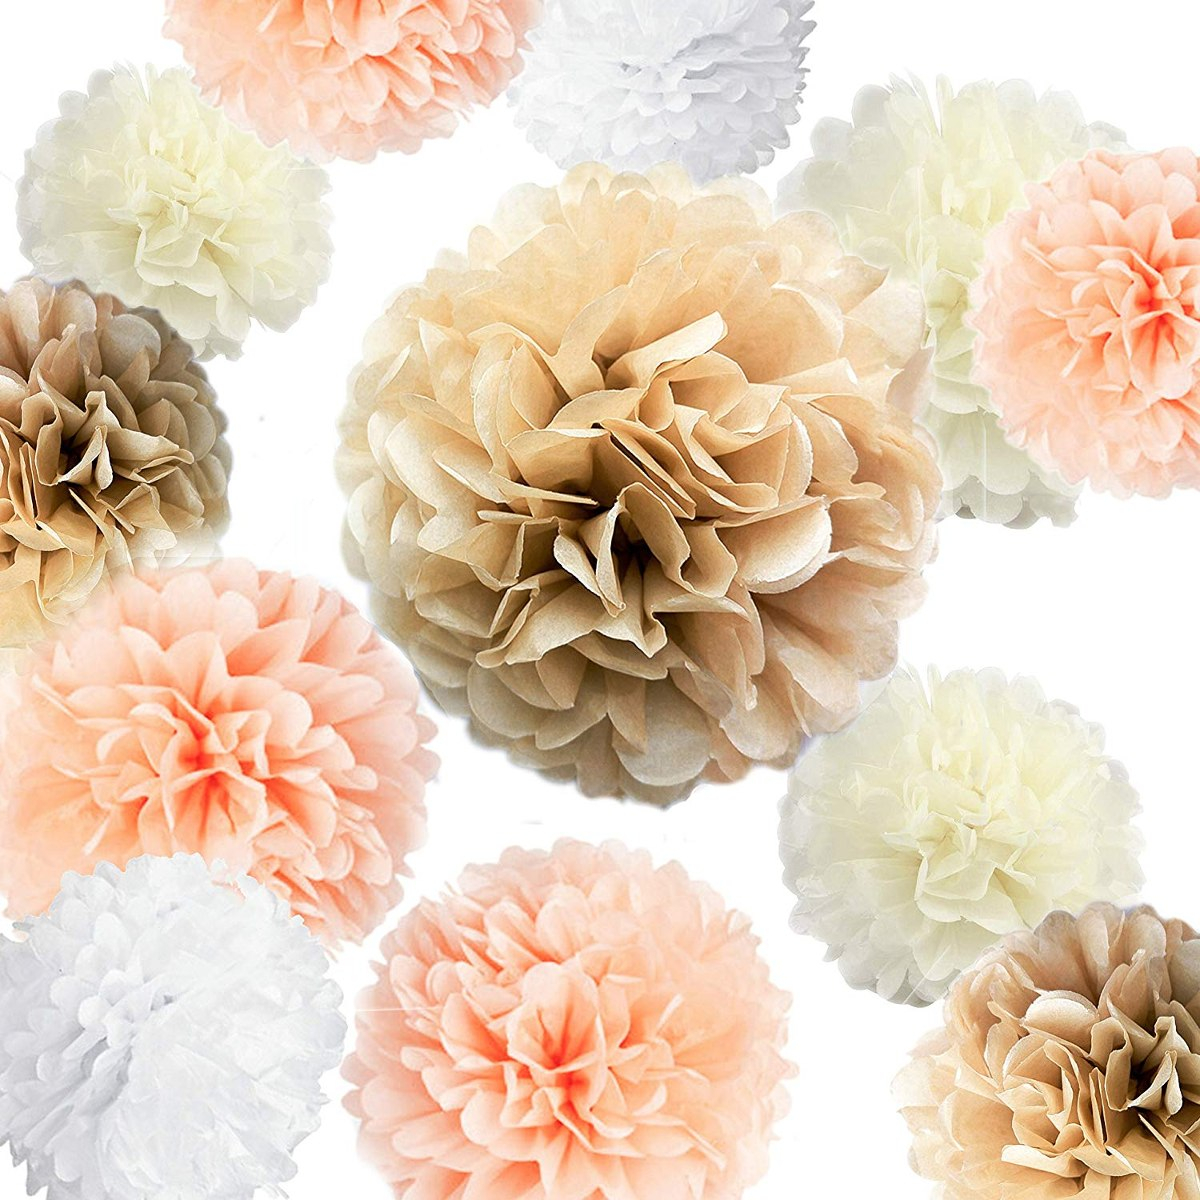 3 Easy Designs of Crafts Out Otissue Paper Vidal Crafts 20 Pcs Party Tissue Paper Pom Poms Set 14 10